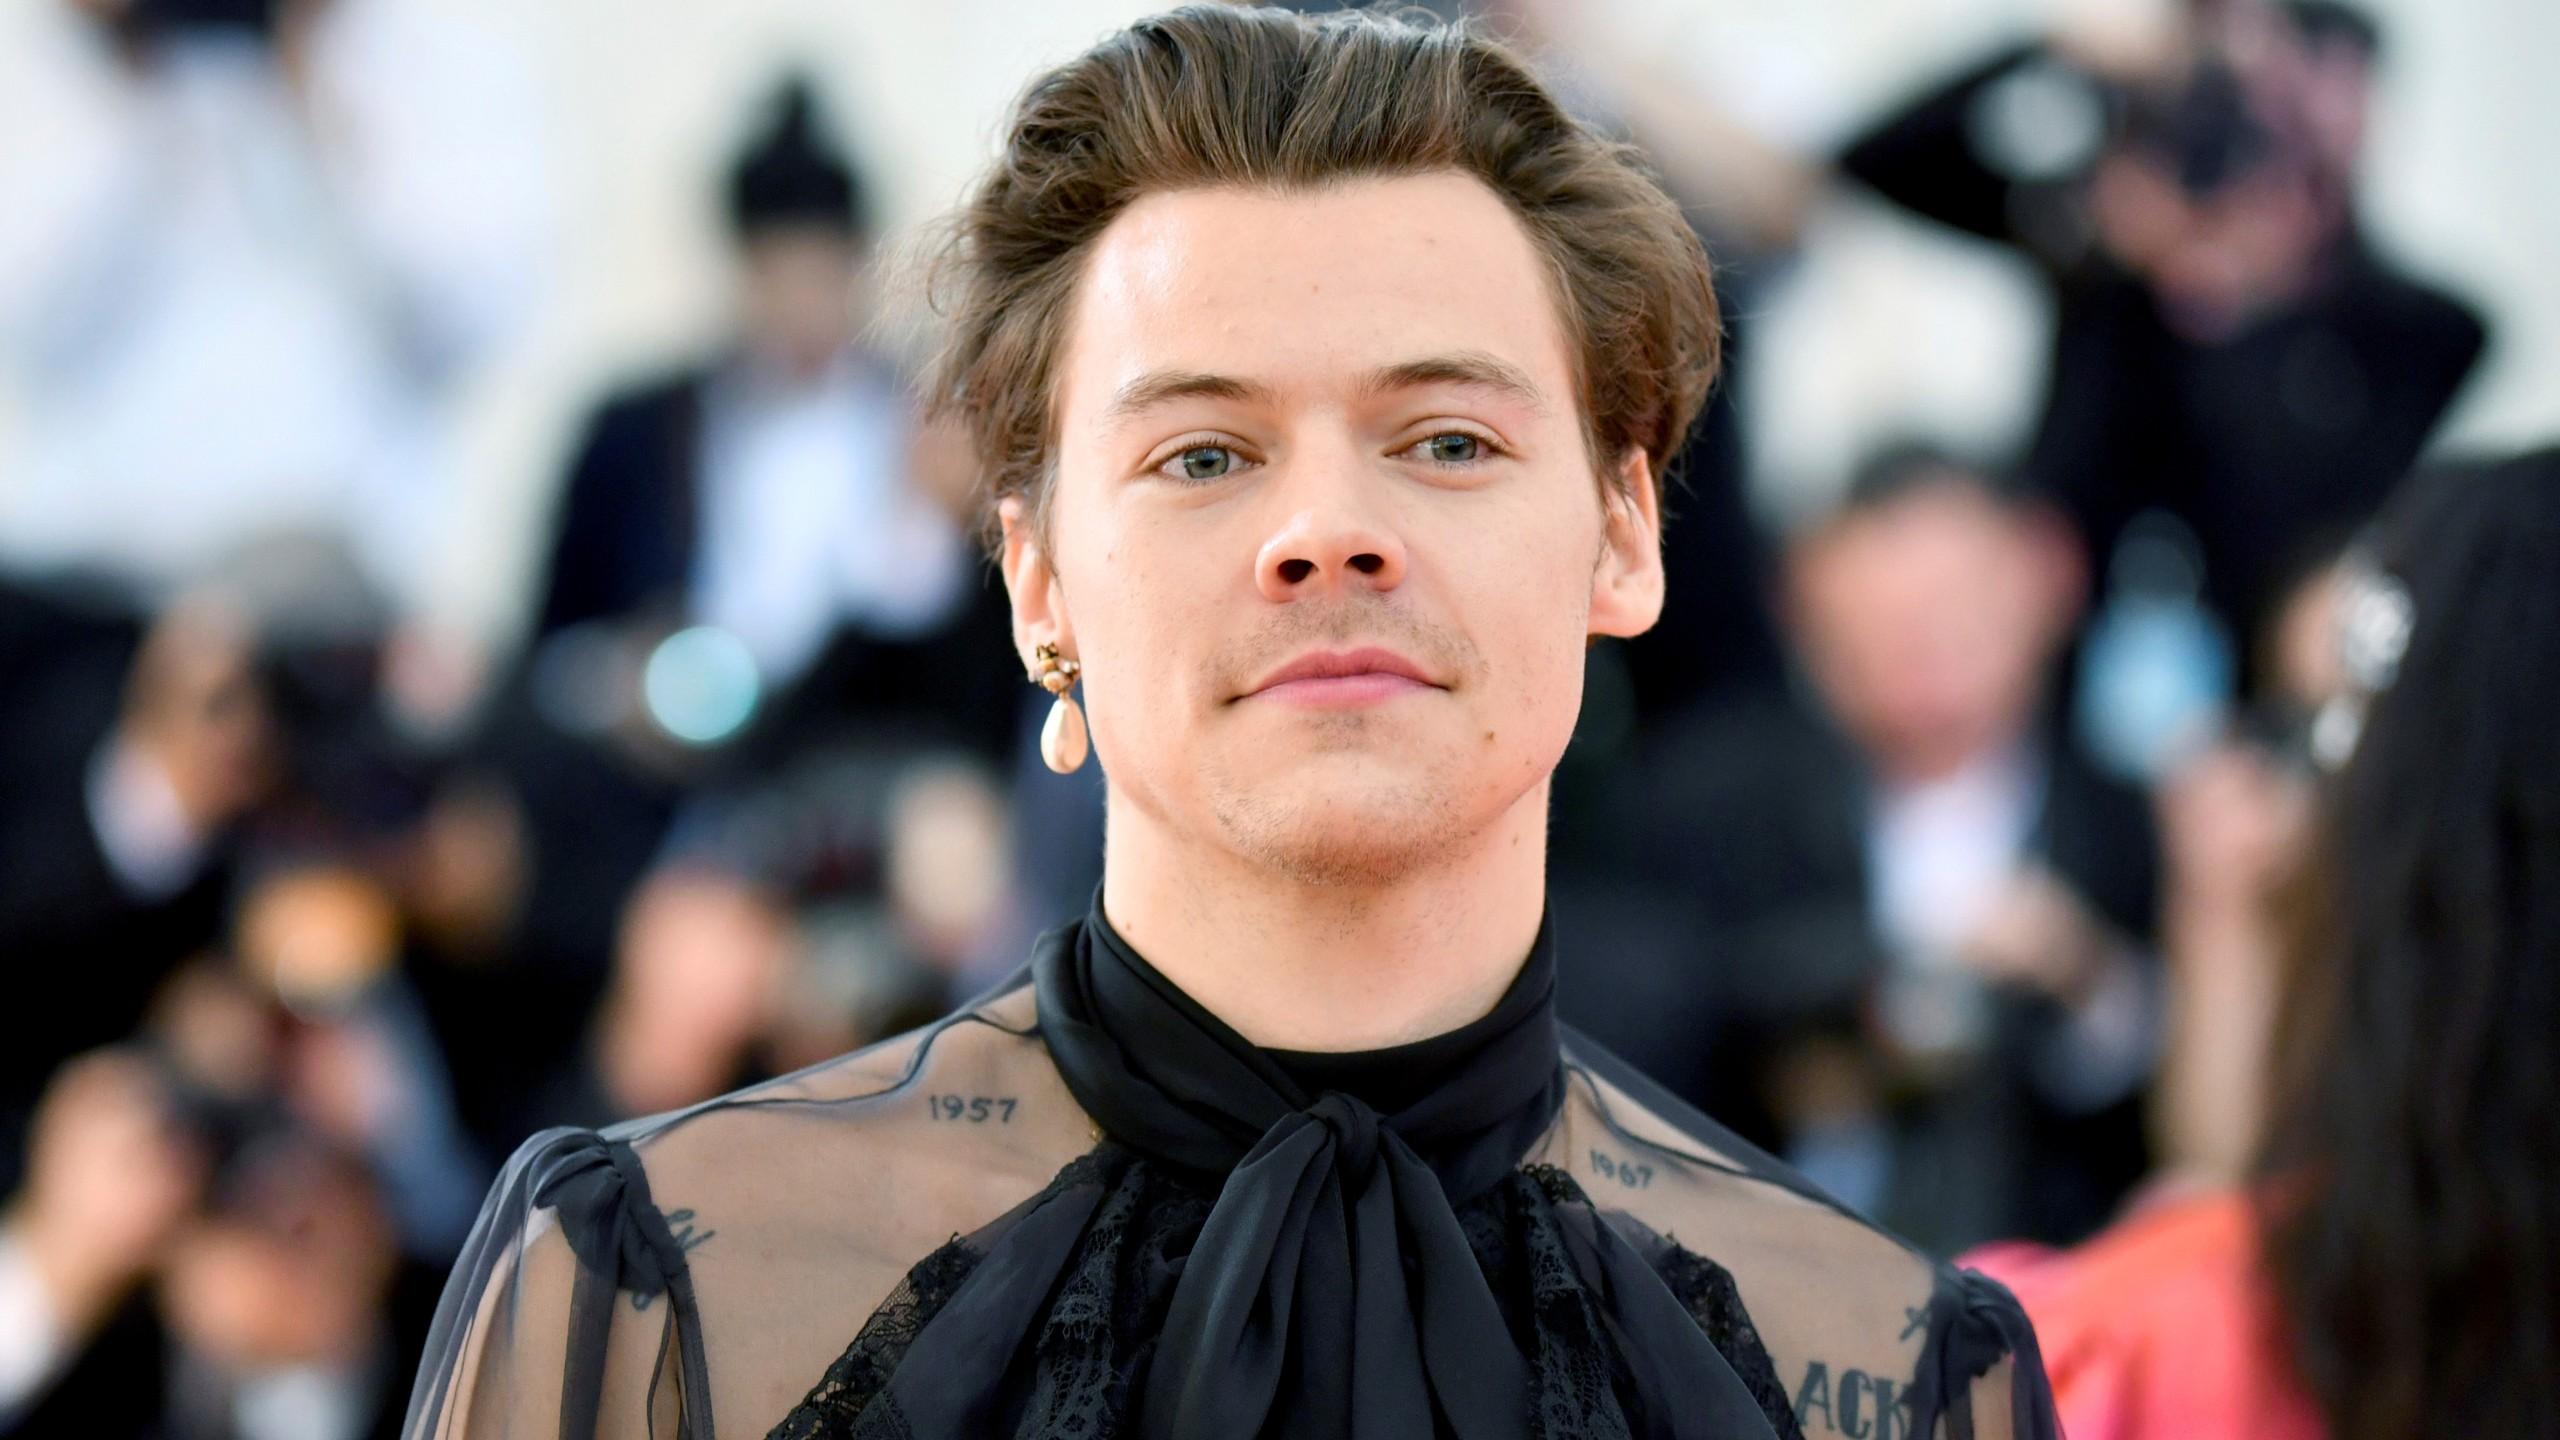 Harry Styles Tour 2020.Harry Styles To Make 2020 Tour Stop In Tampa Wfla